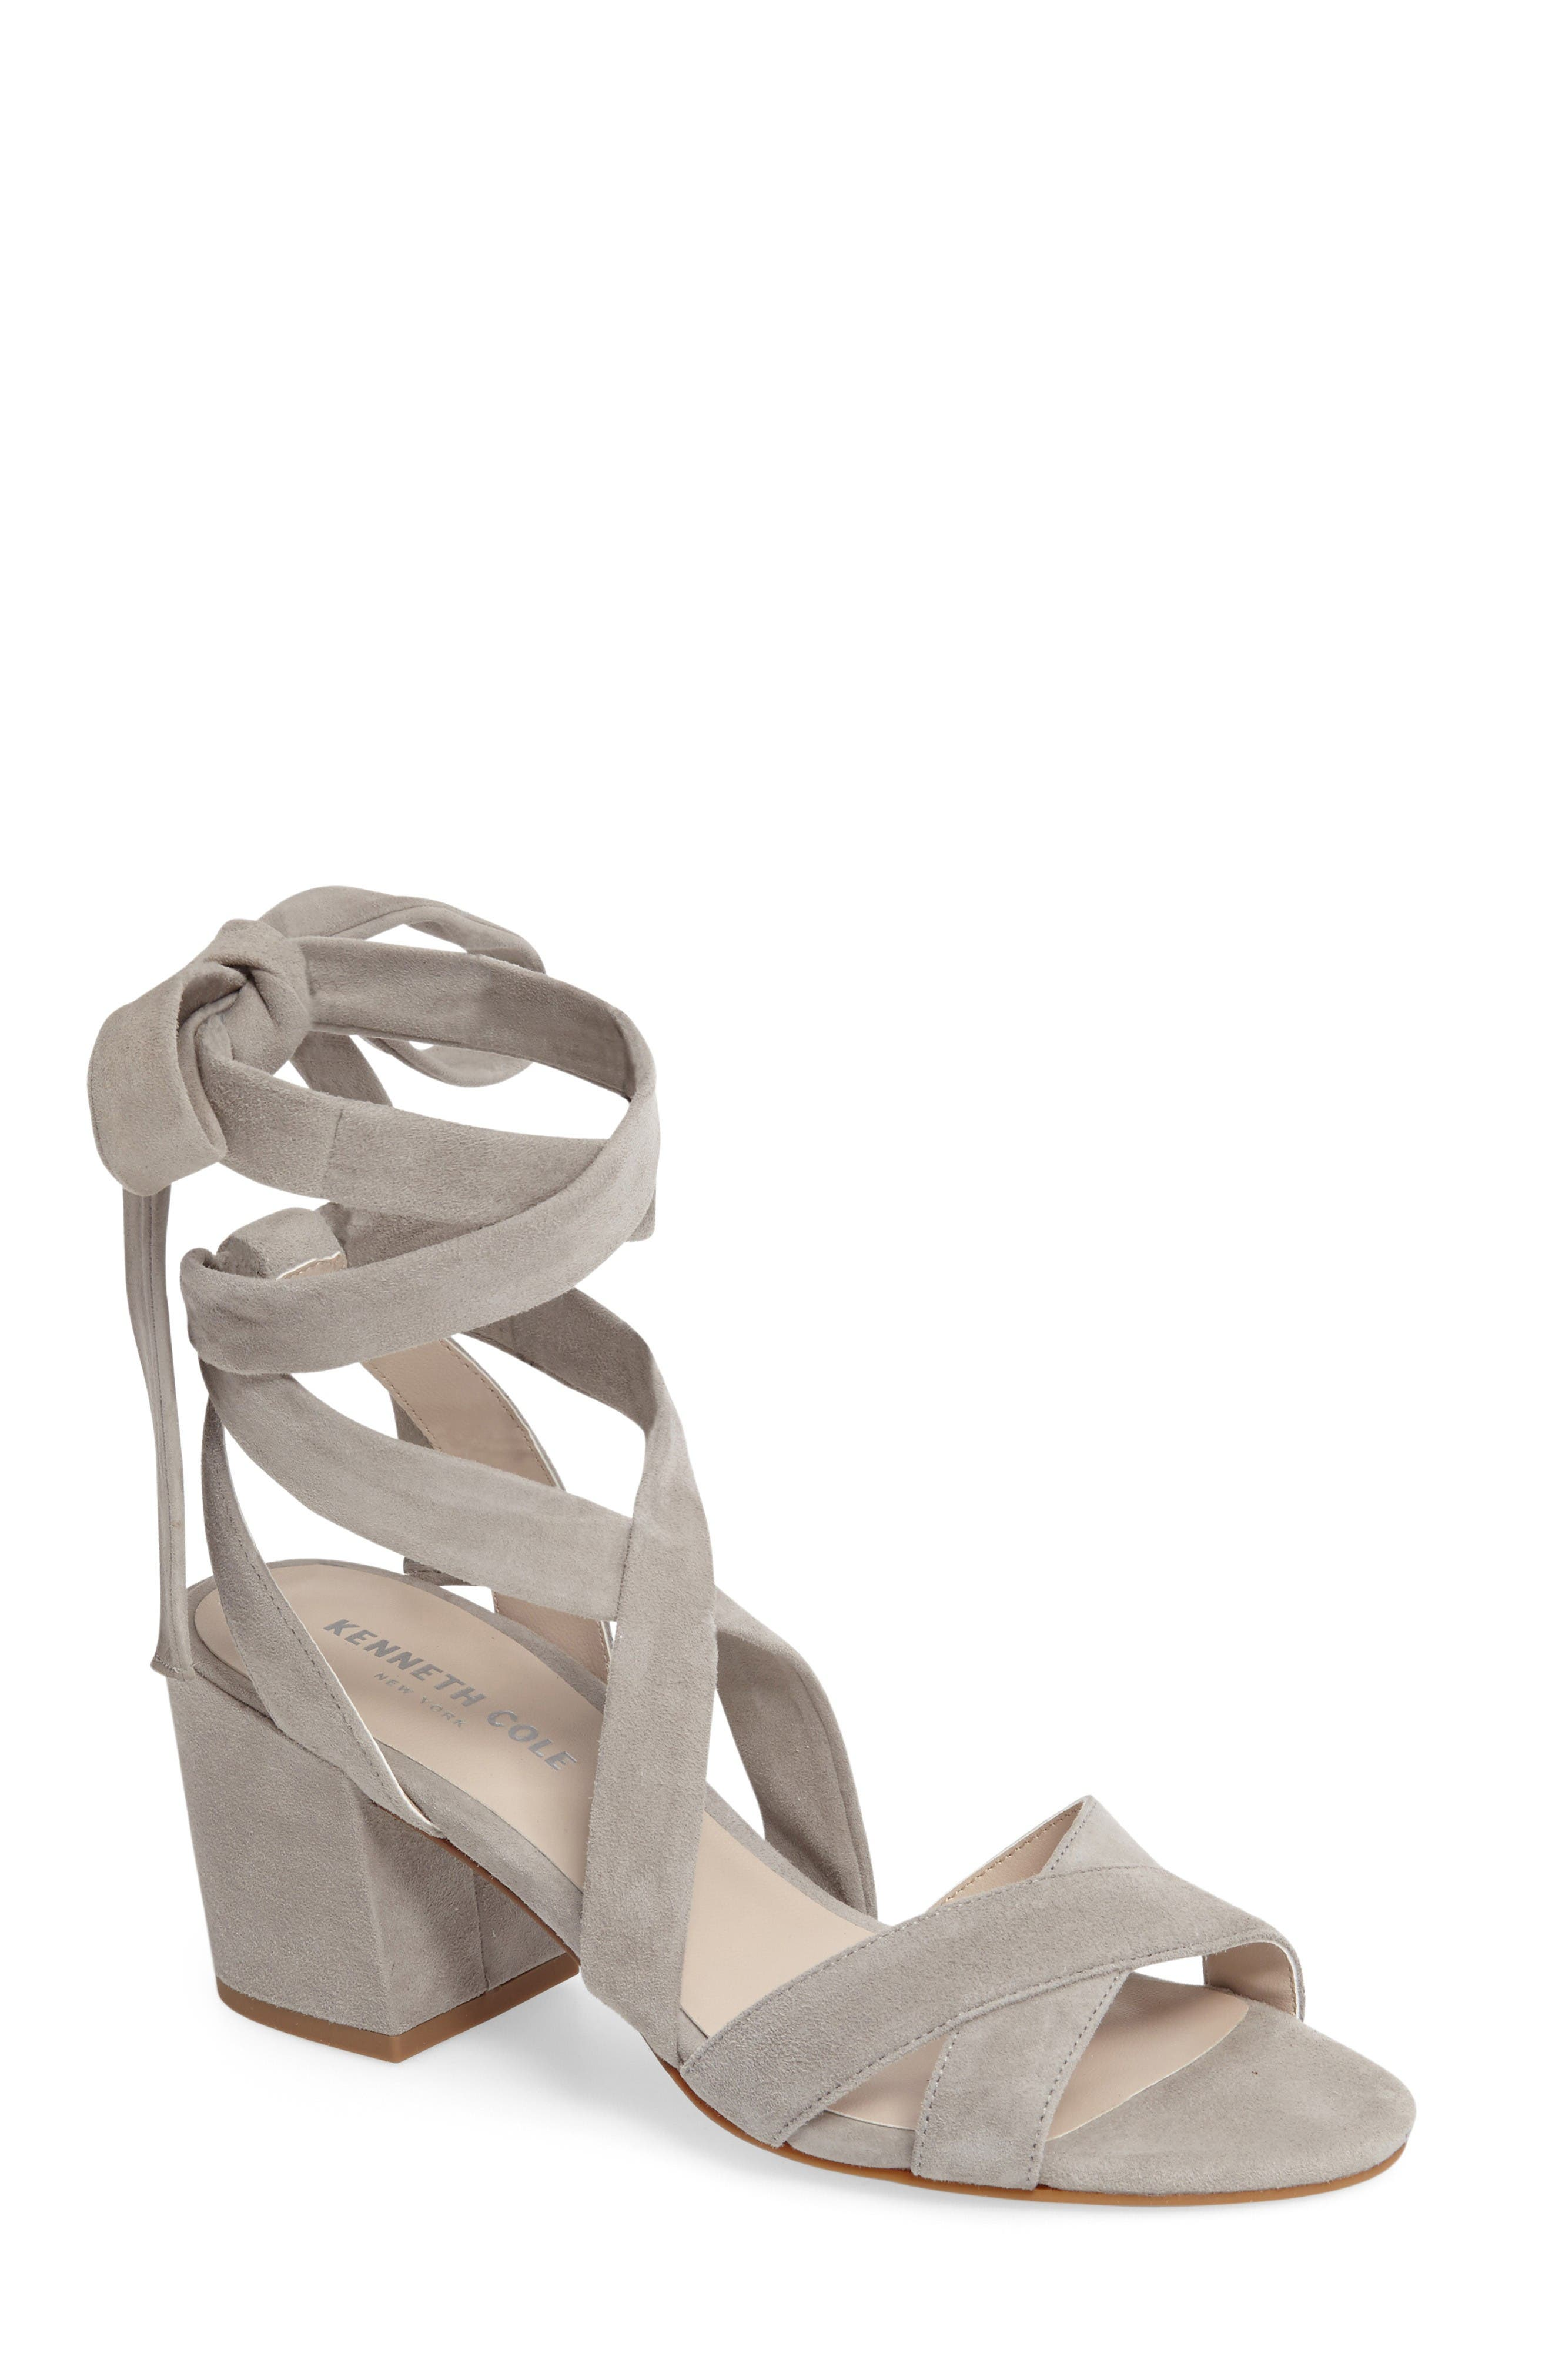 Main Image - Kenneth Cole New York 'Victoria' Leather Ankle Strap Sandal (Women)